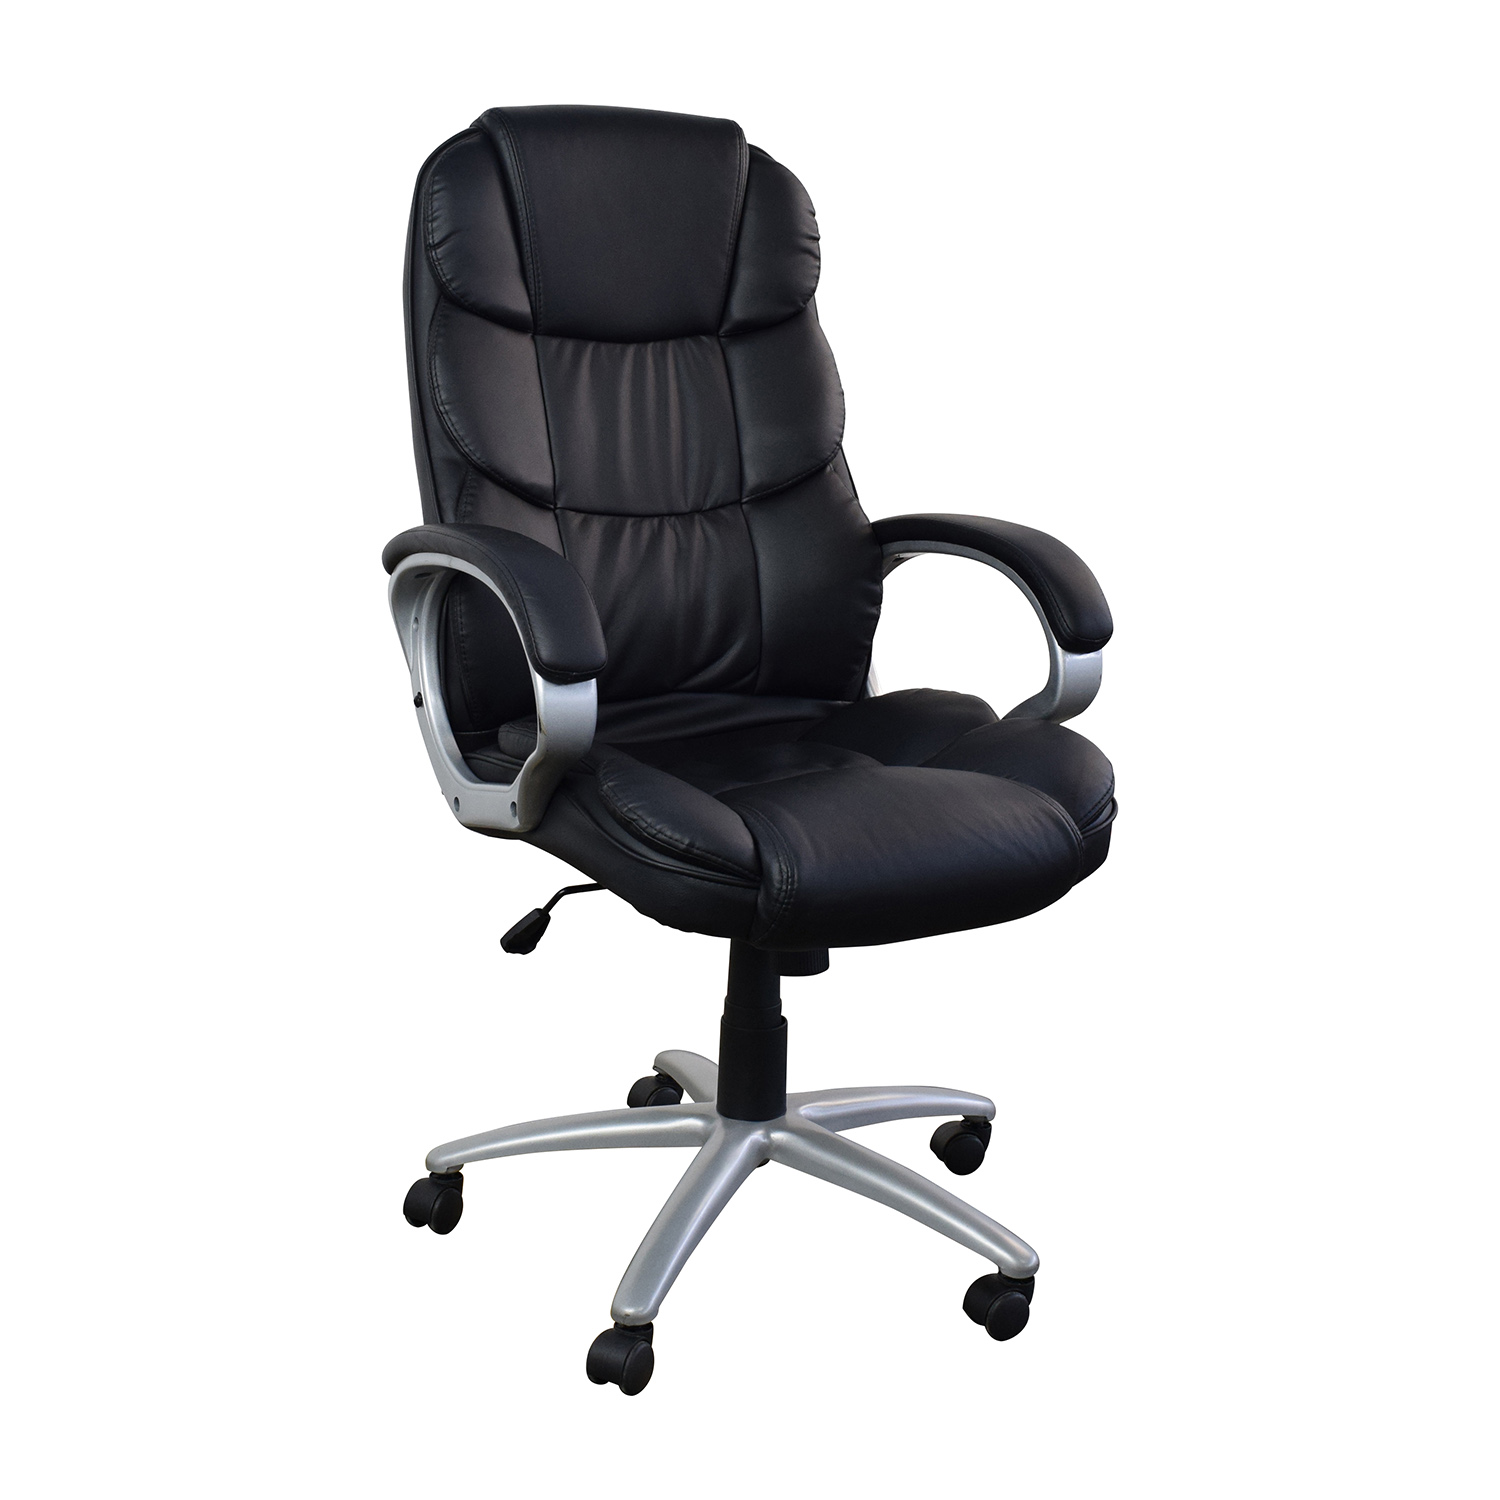 Leather Office Chairs 57 Off Black Leather Executive Office Chair Chairs